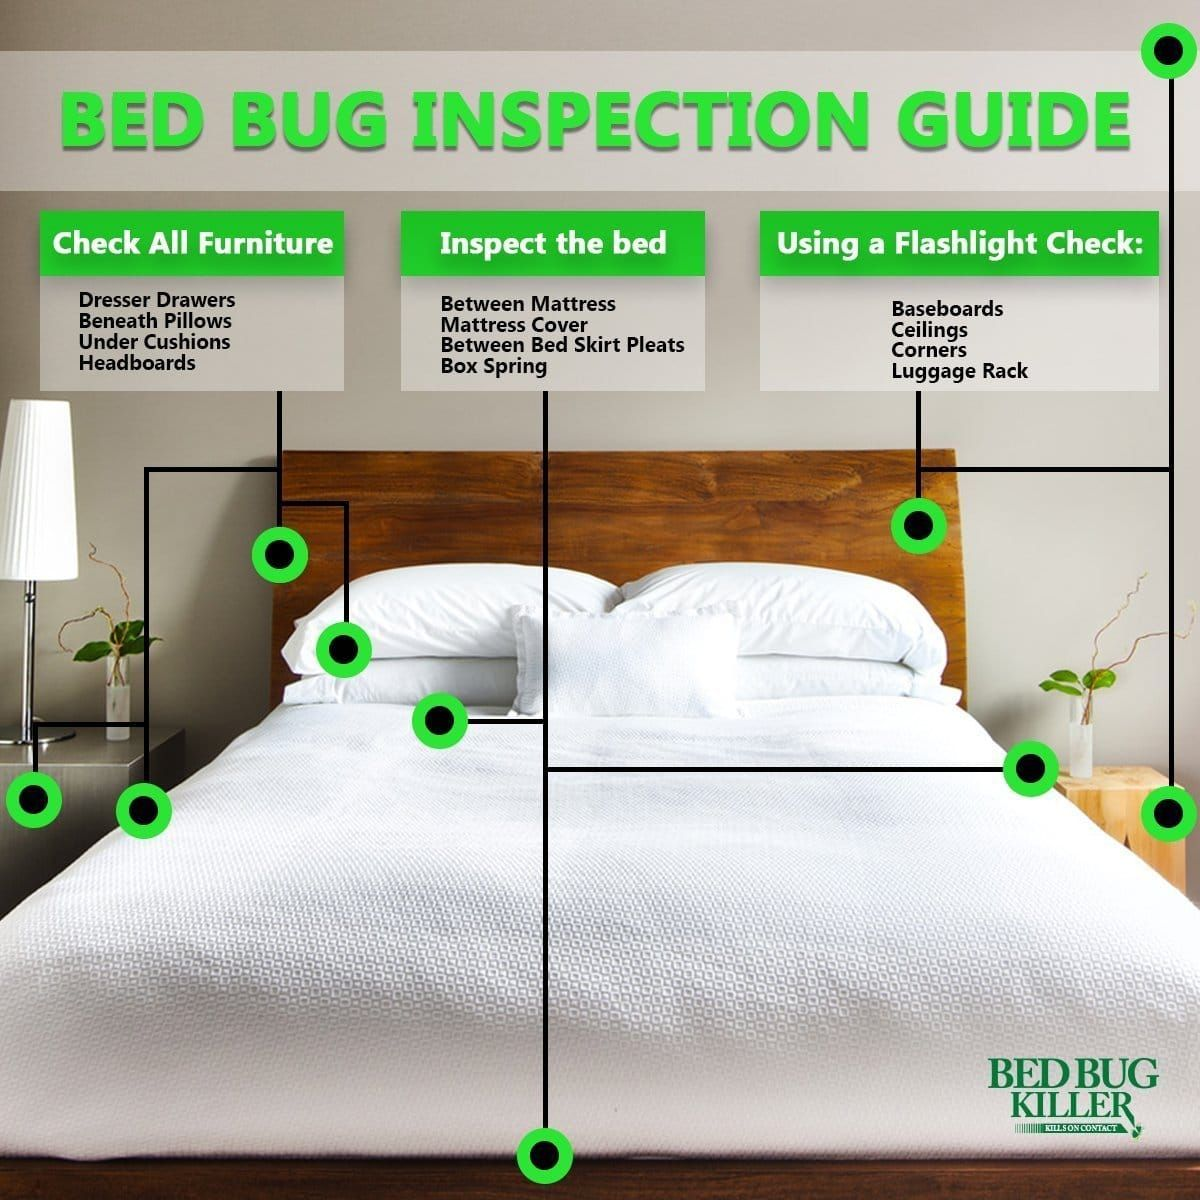 How to check for bed bugs in a hotel room or other public